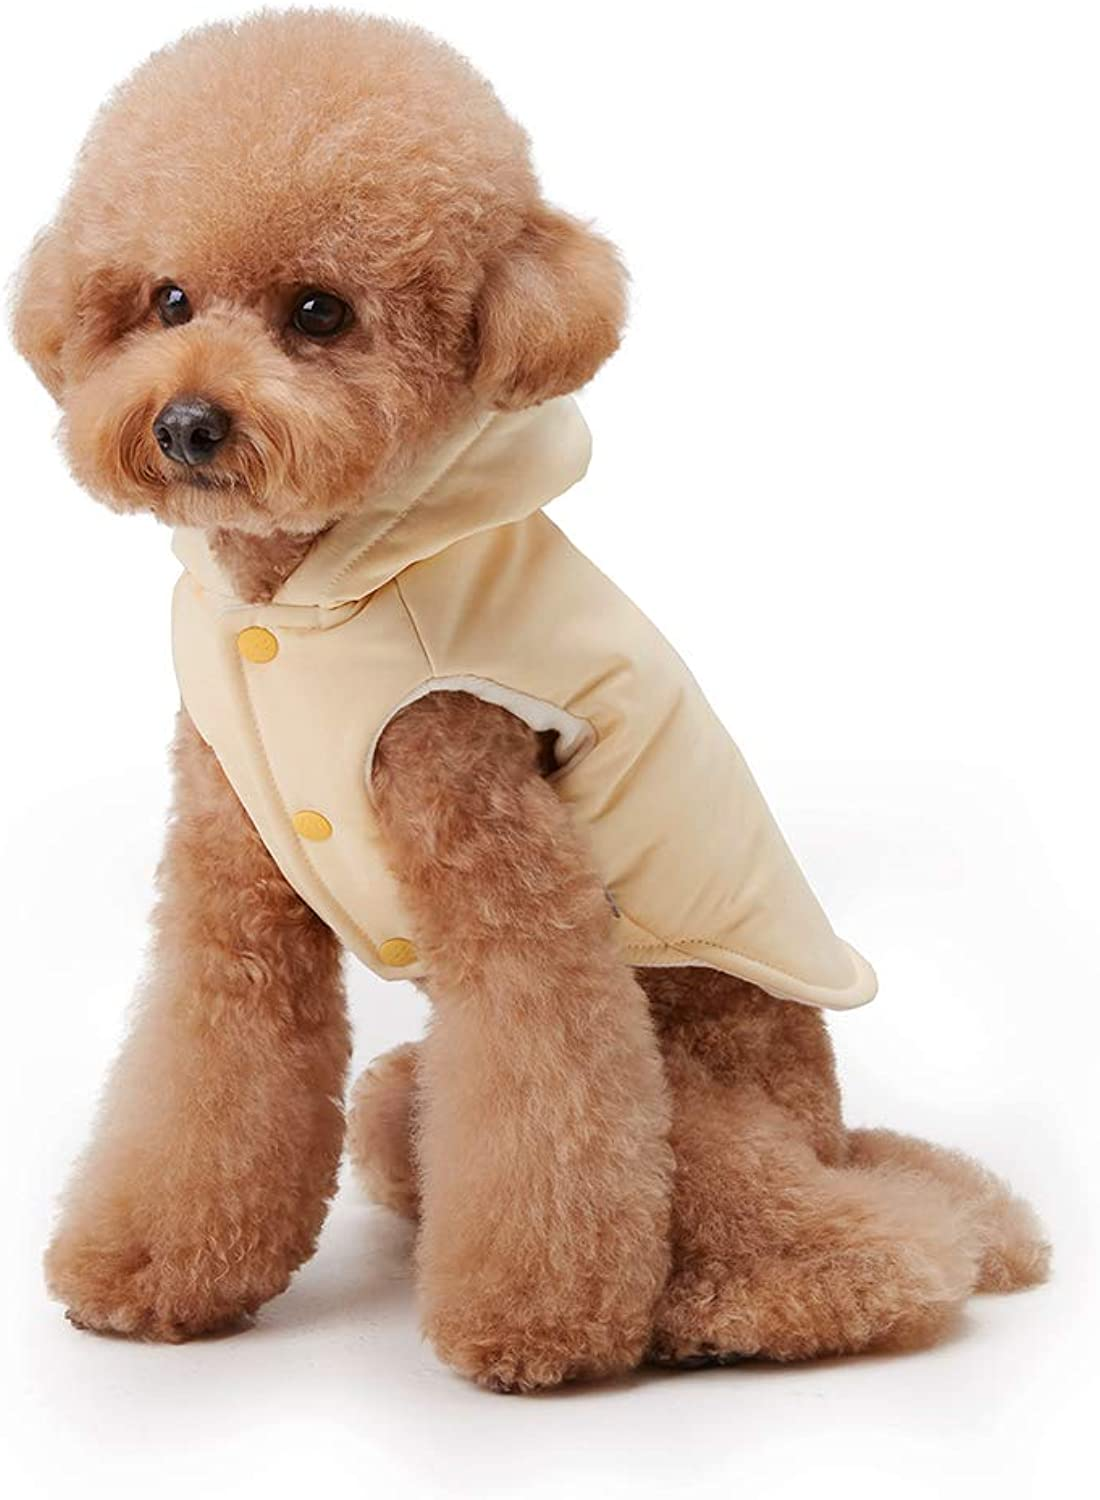 My Fluffy Dog Apparel Pastel Warm Jacket Hoodie for Dog Winter Coats Vest (Medium, Lemon Yellow)